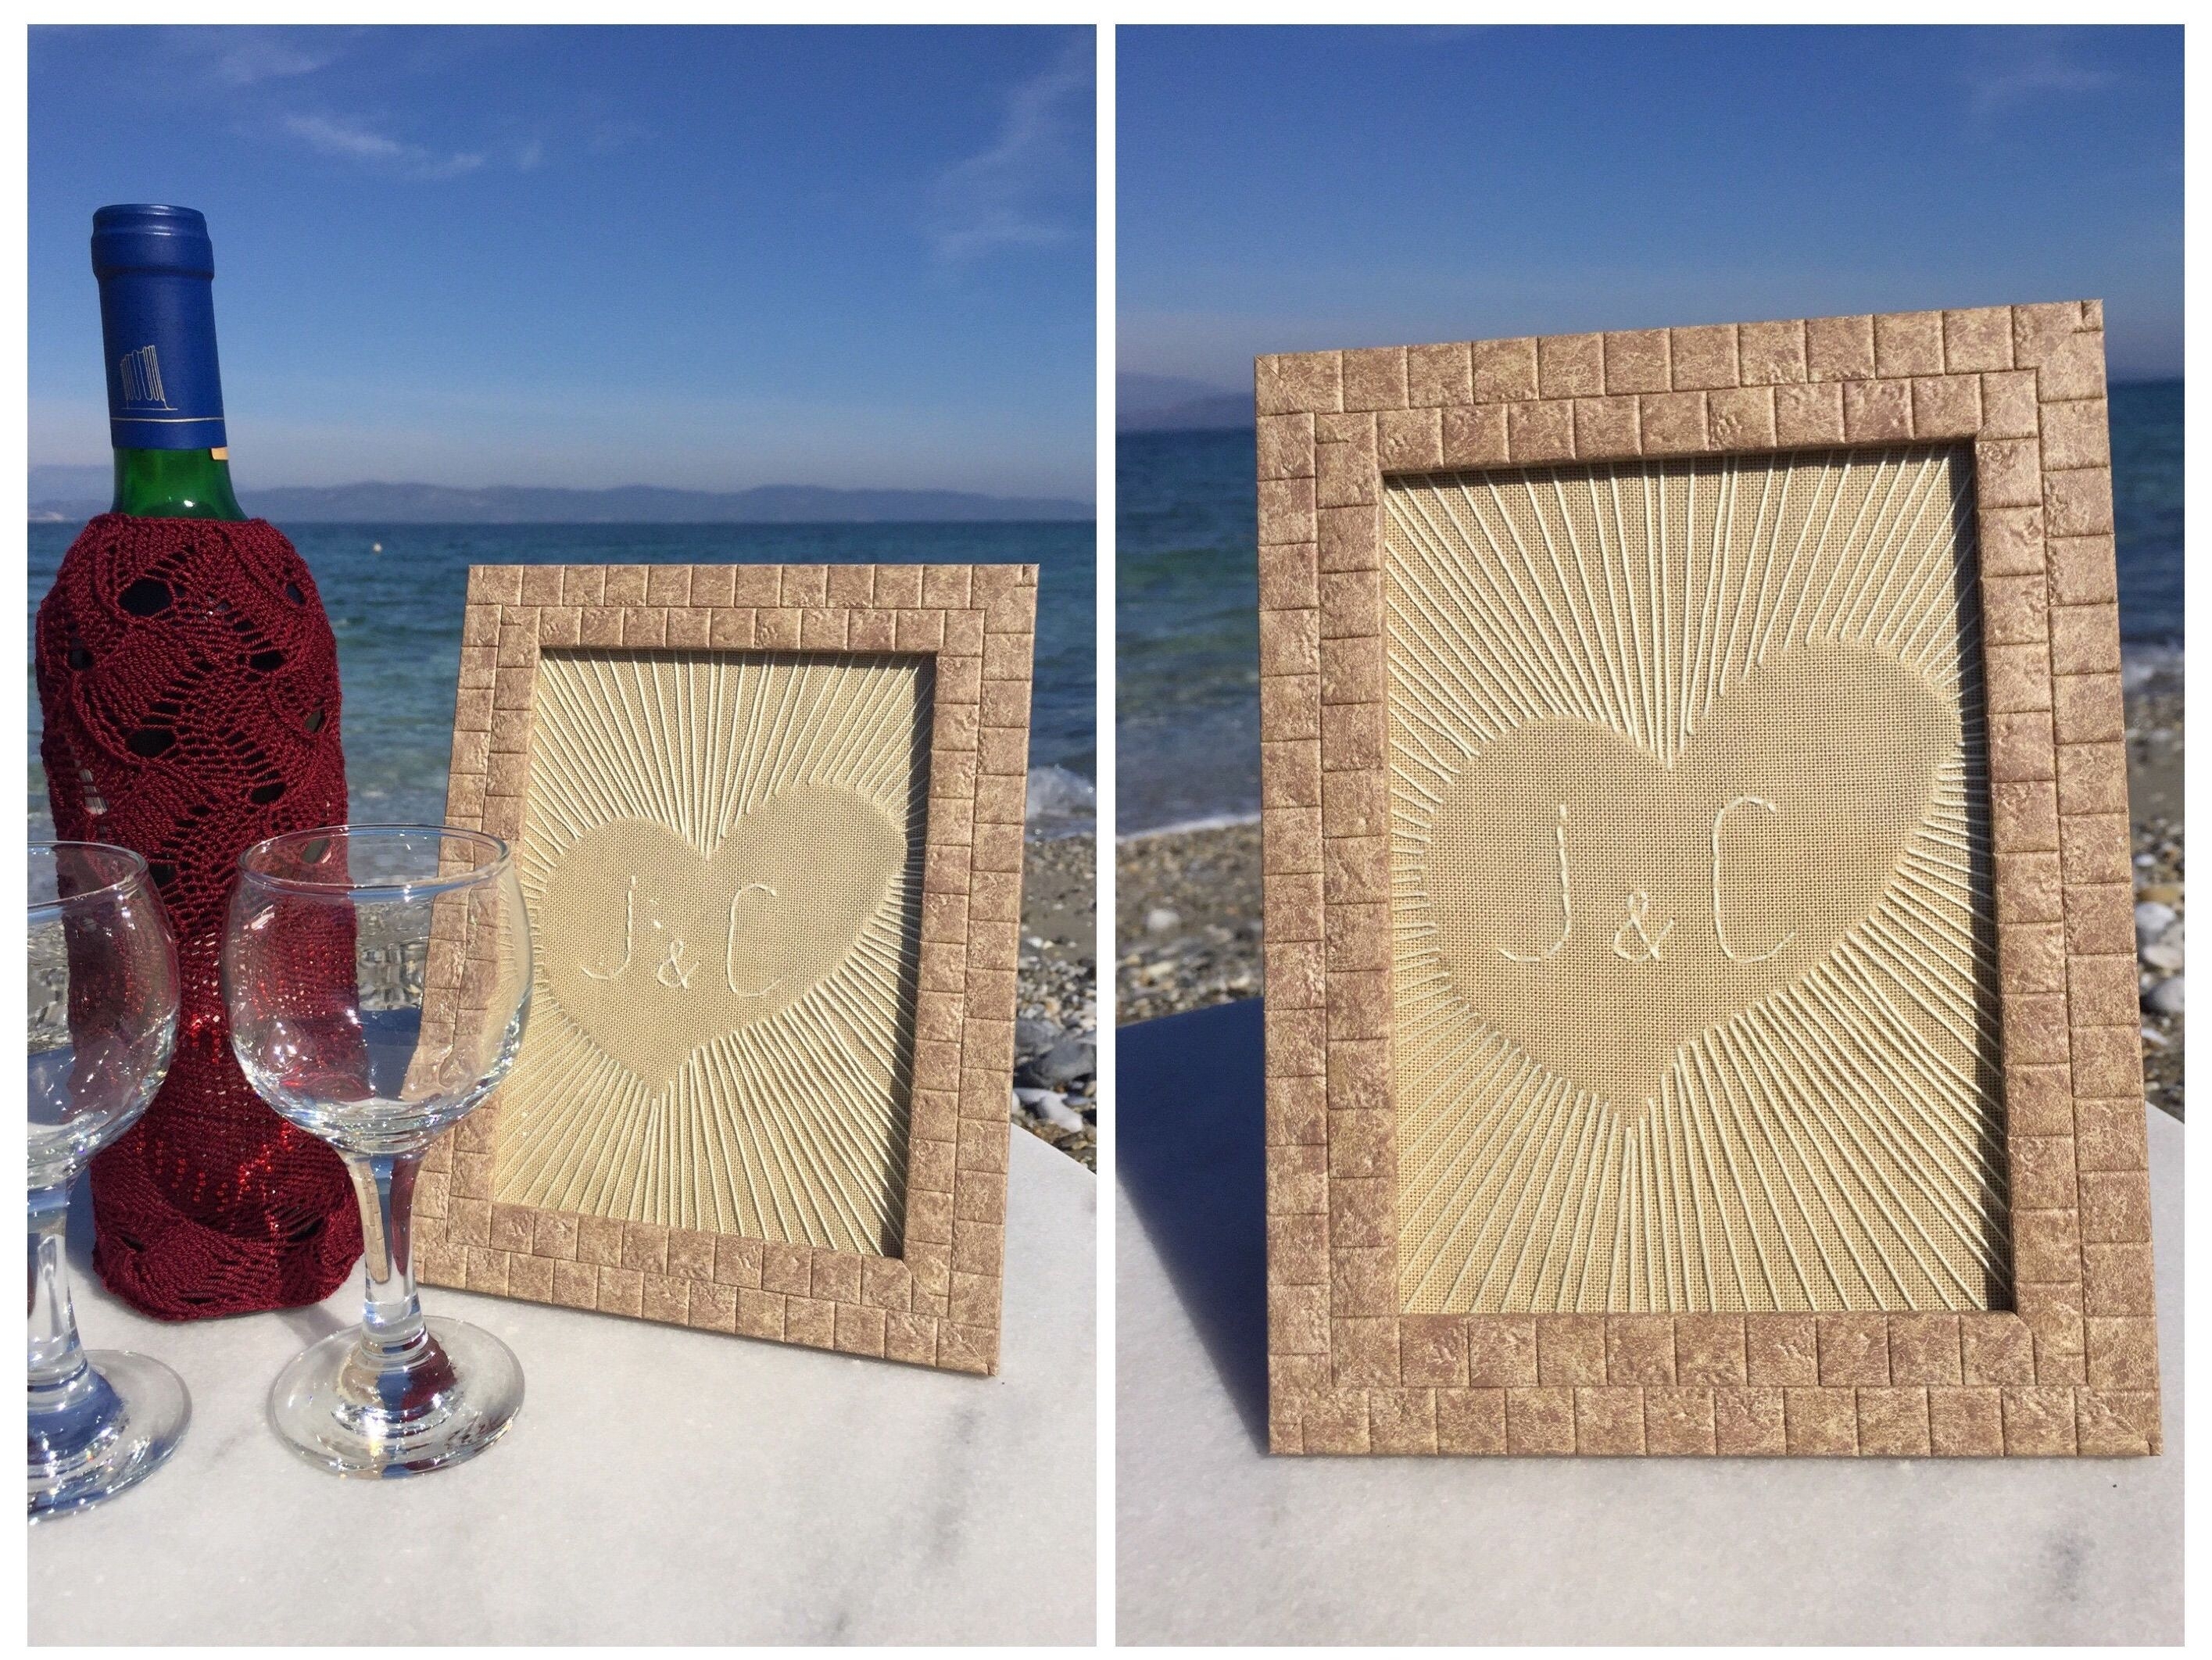 Lace anniversary gift for him 13 year wedding anniversary